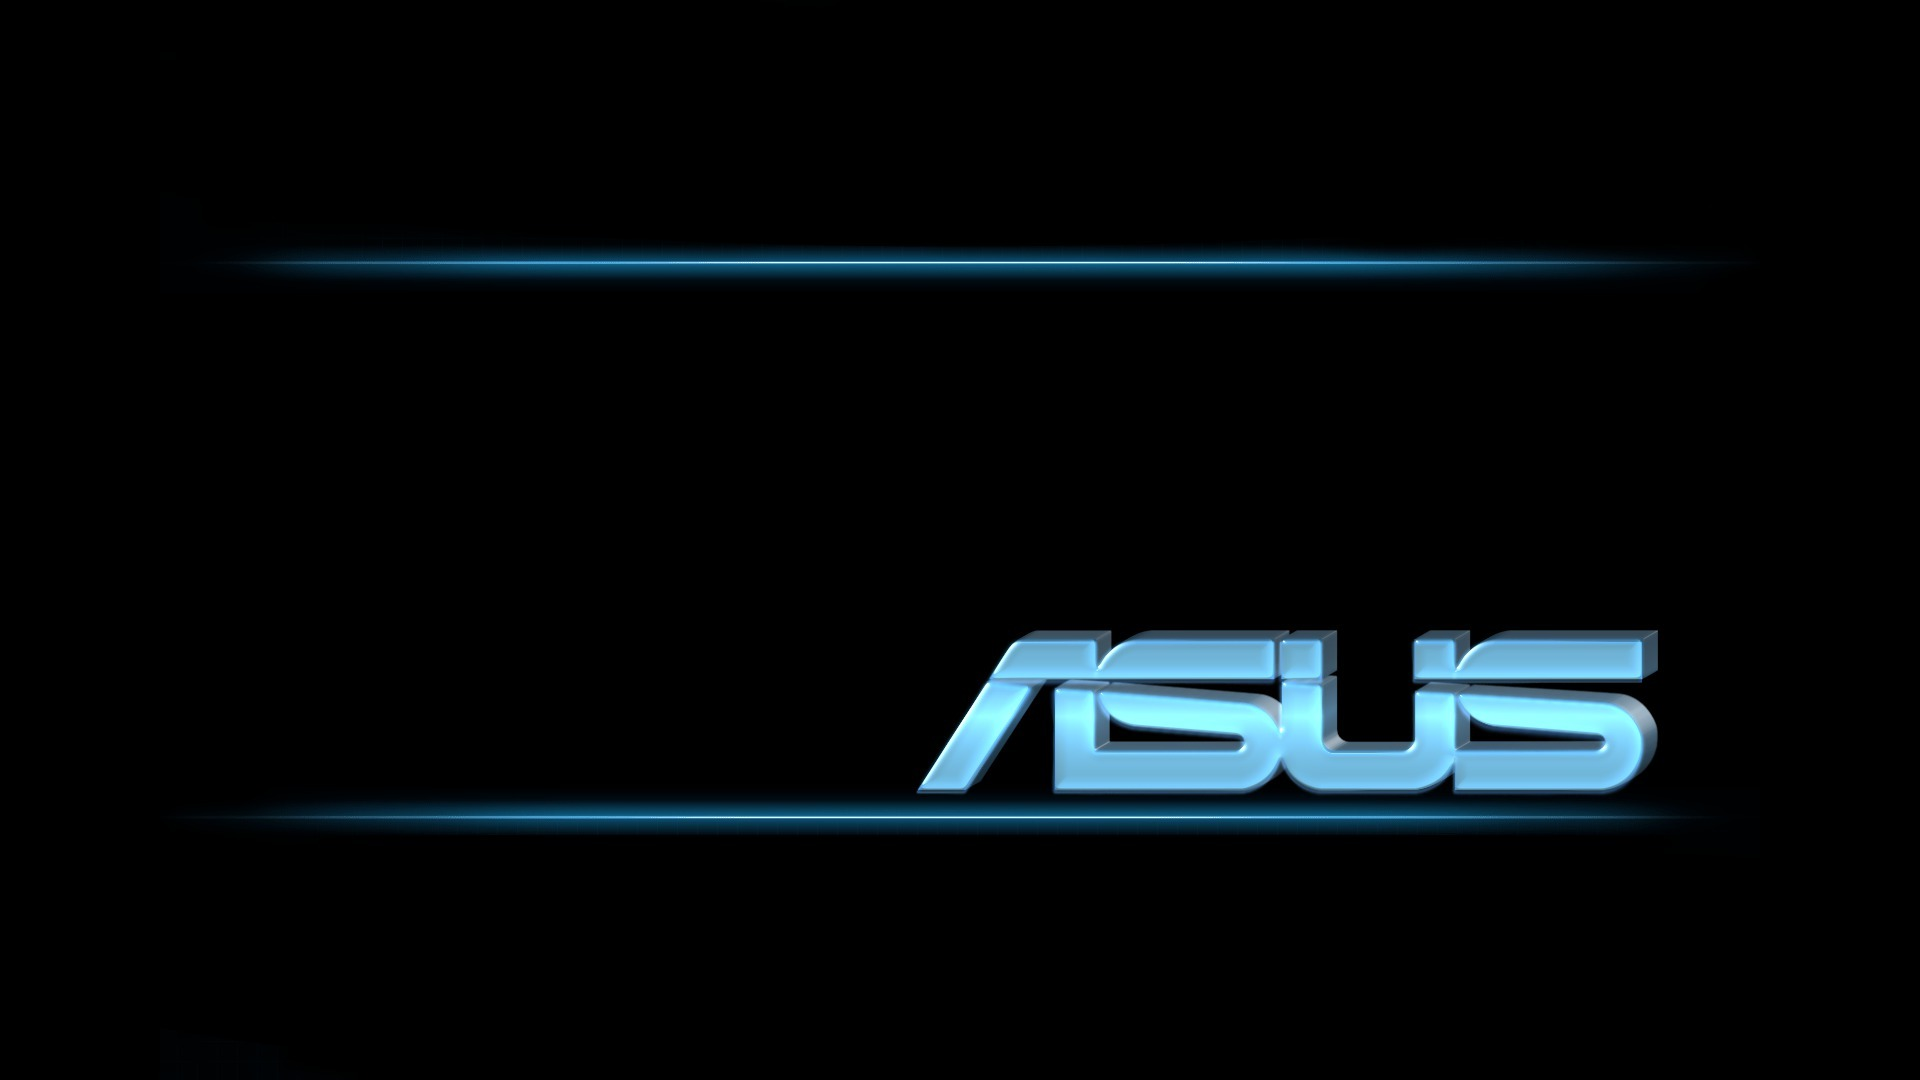 <b>Asus Computer</b> Wallpapers, <b>Desktop</b> Backgrounds | <b>1920x1080</b> | ID:177593